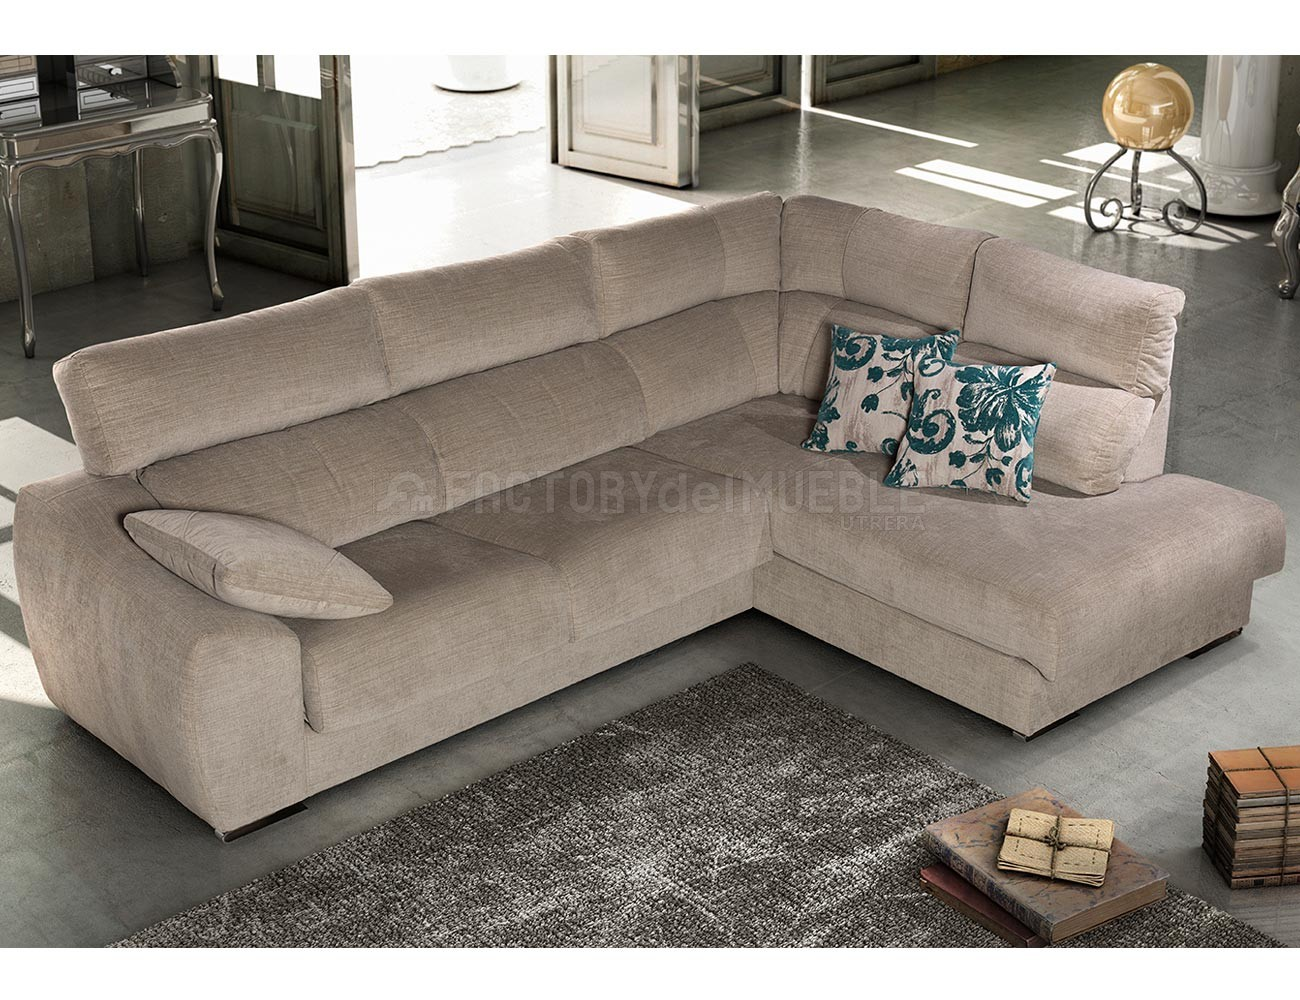 Sofa chaiselongue rincon moderno forma16